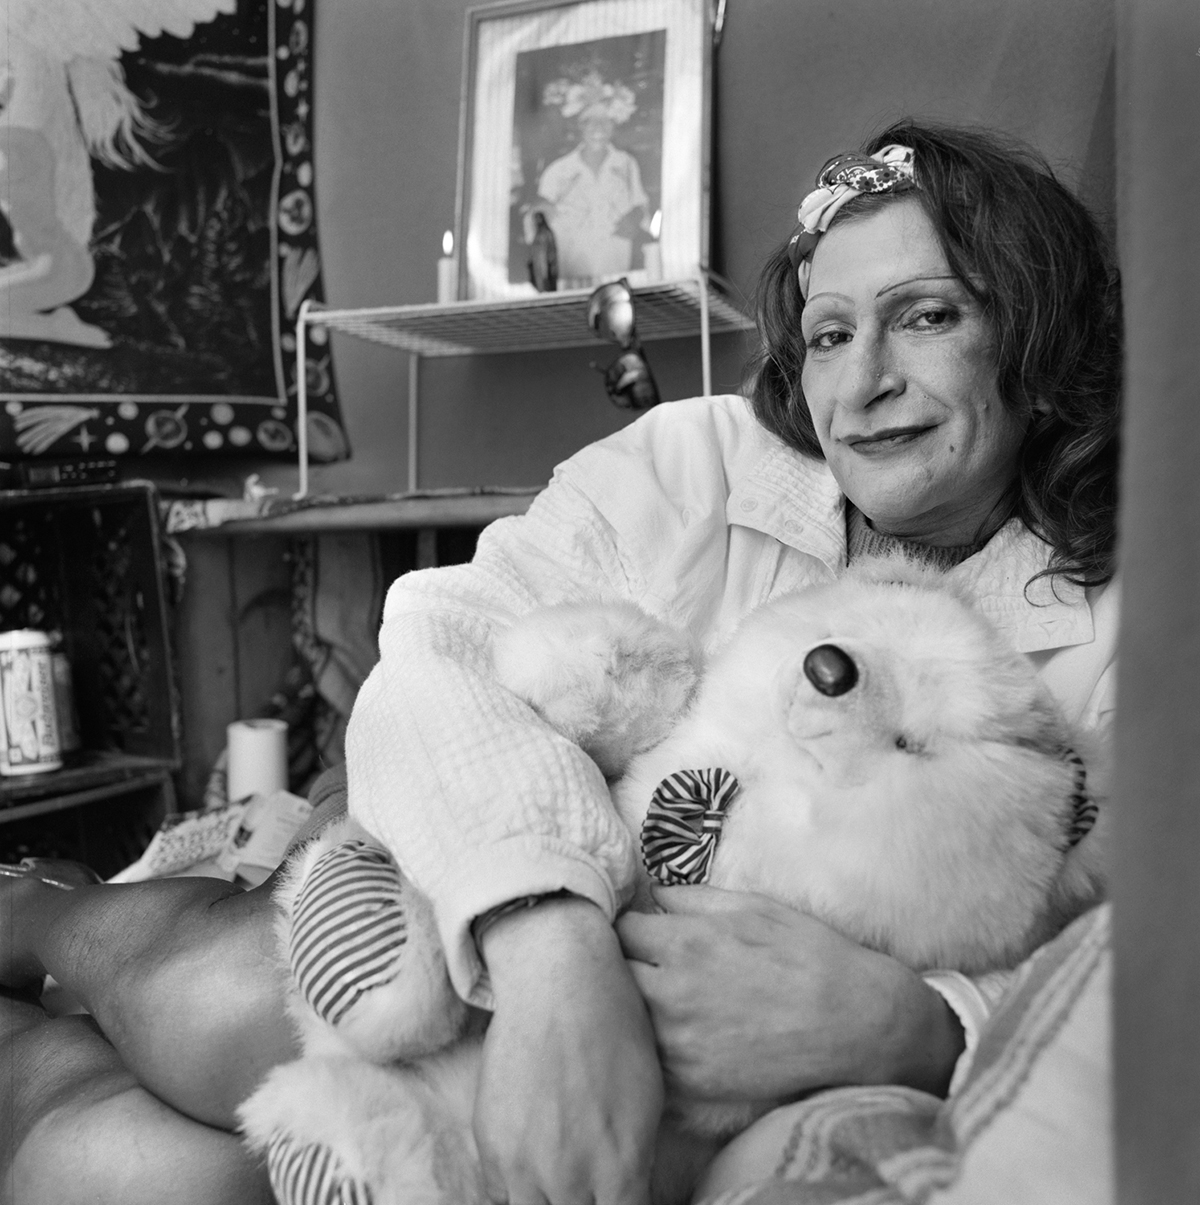 In memory of Sylvia Rivera, 1951-2002 - photo by Giselle DeFares